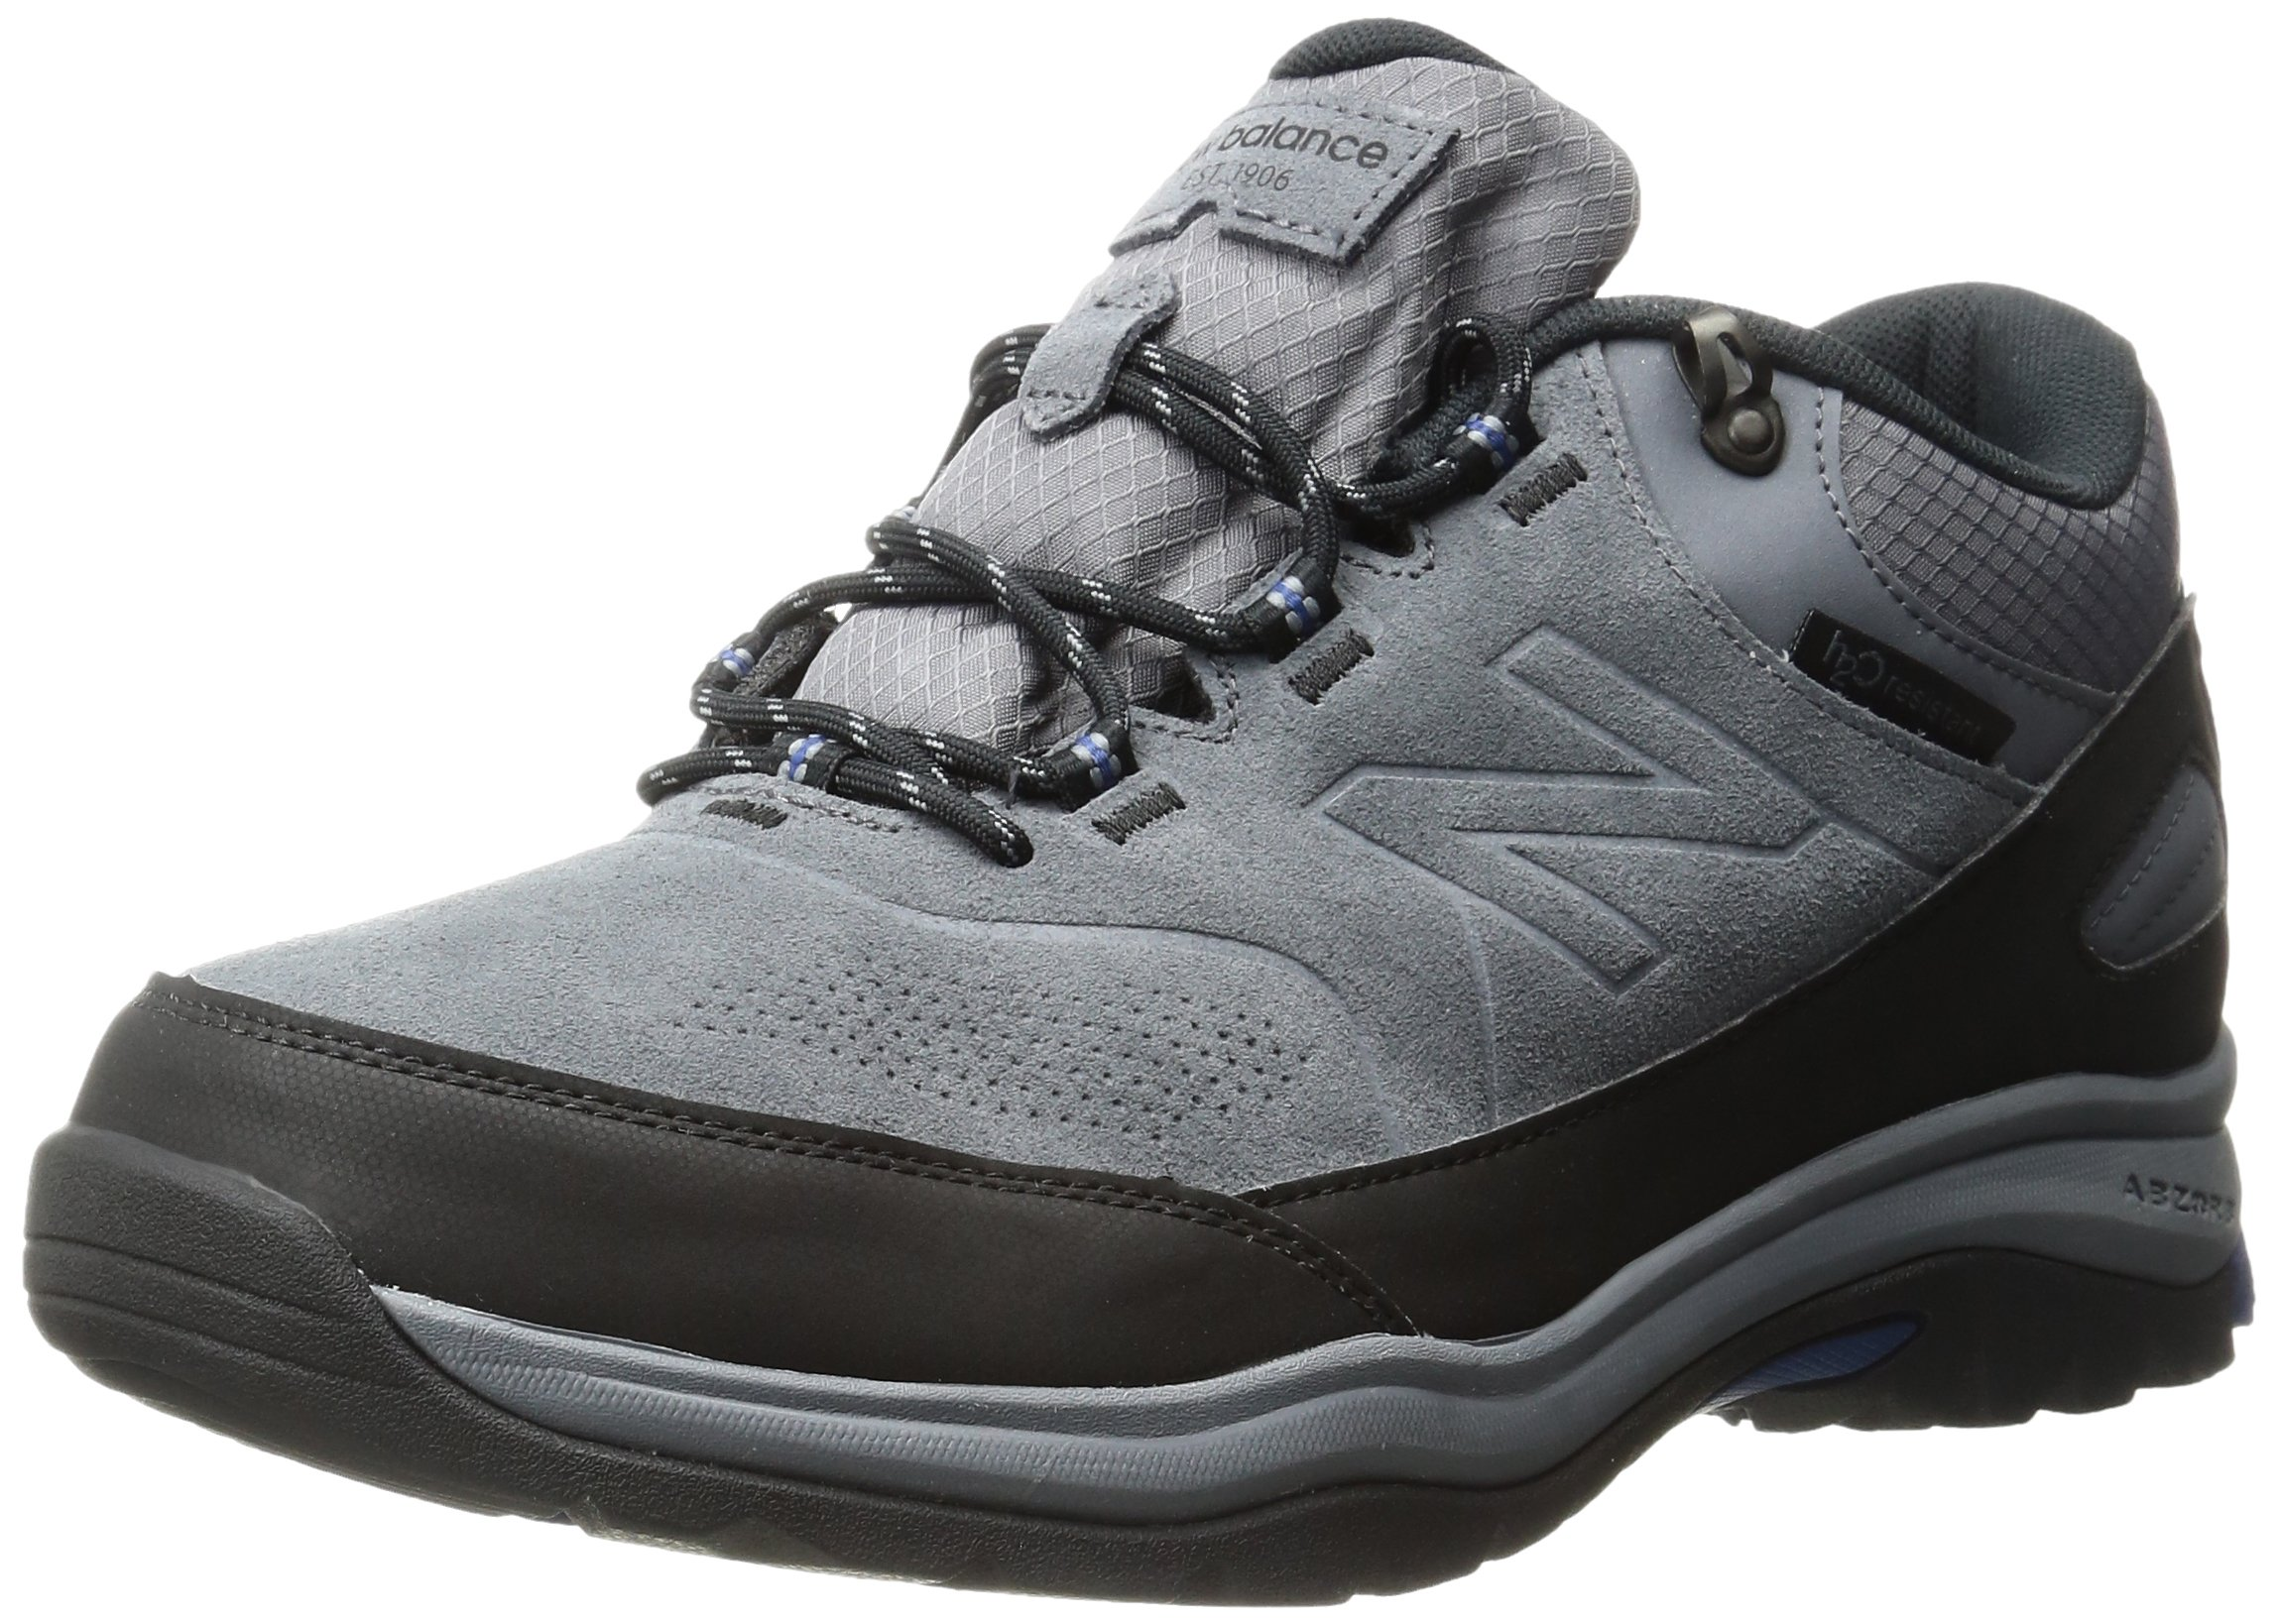 New Balance Men's 779v1 Trail Walking Shoe, Grey/Black, 11.5 D US by New Balance